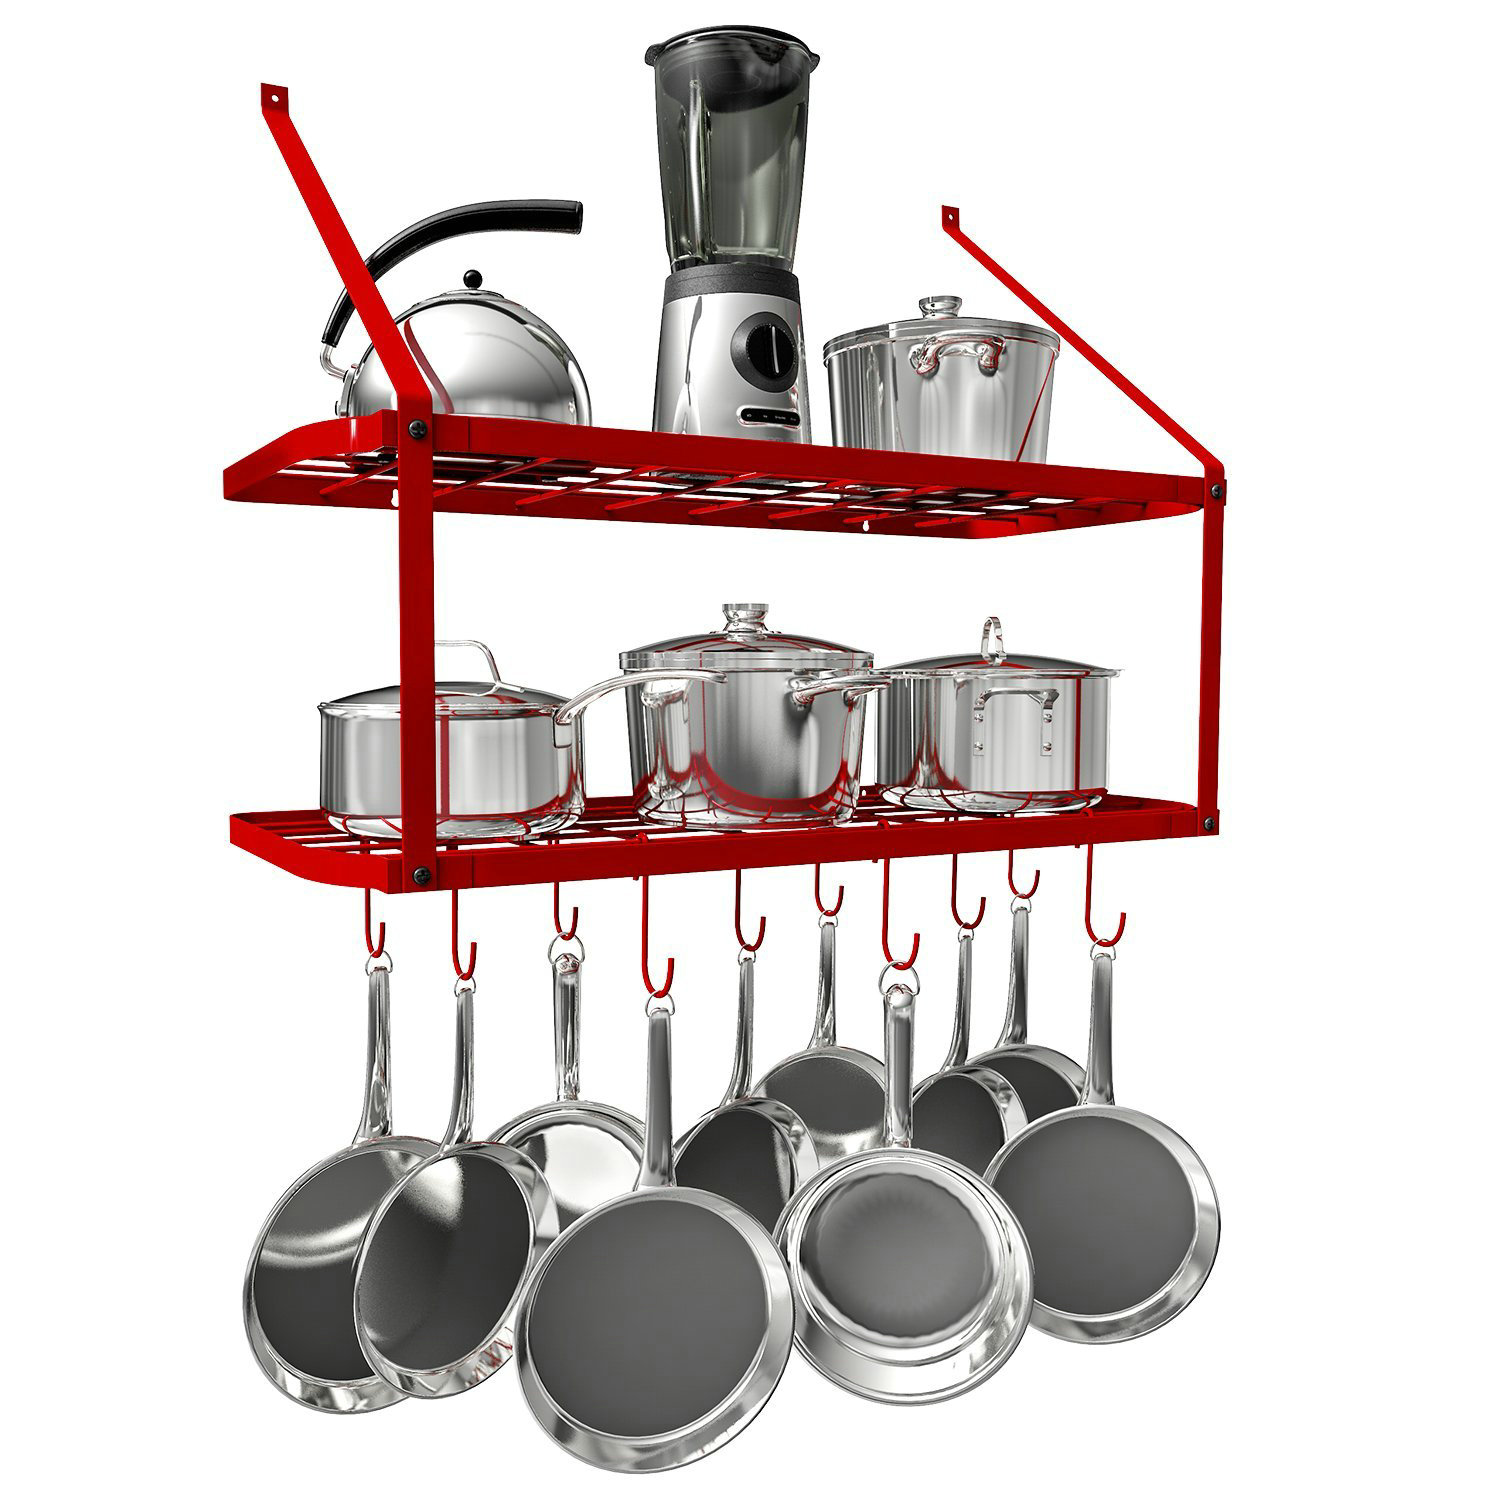 VDOMUS Pots and Pans Rack Wall Mounted Hanging Pot Shelf ...